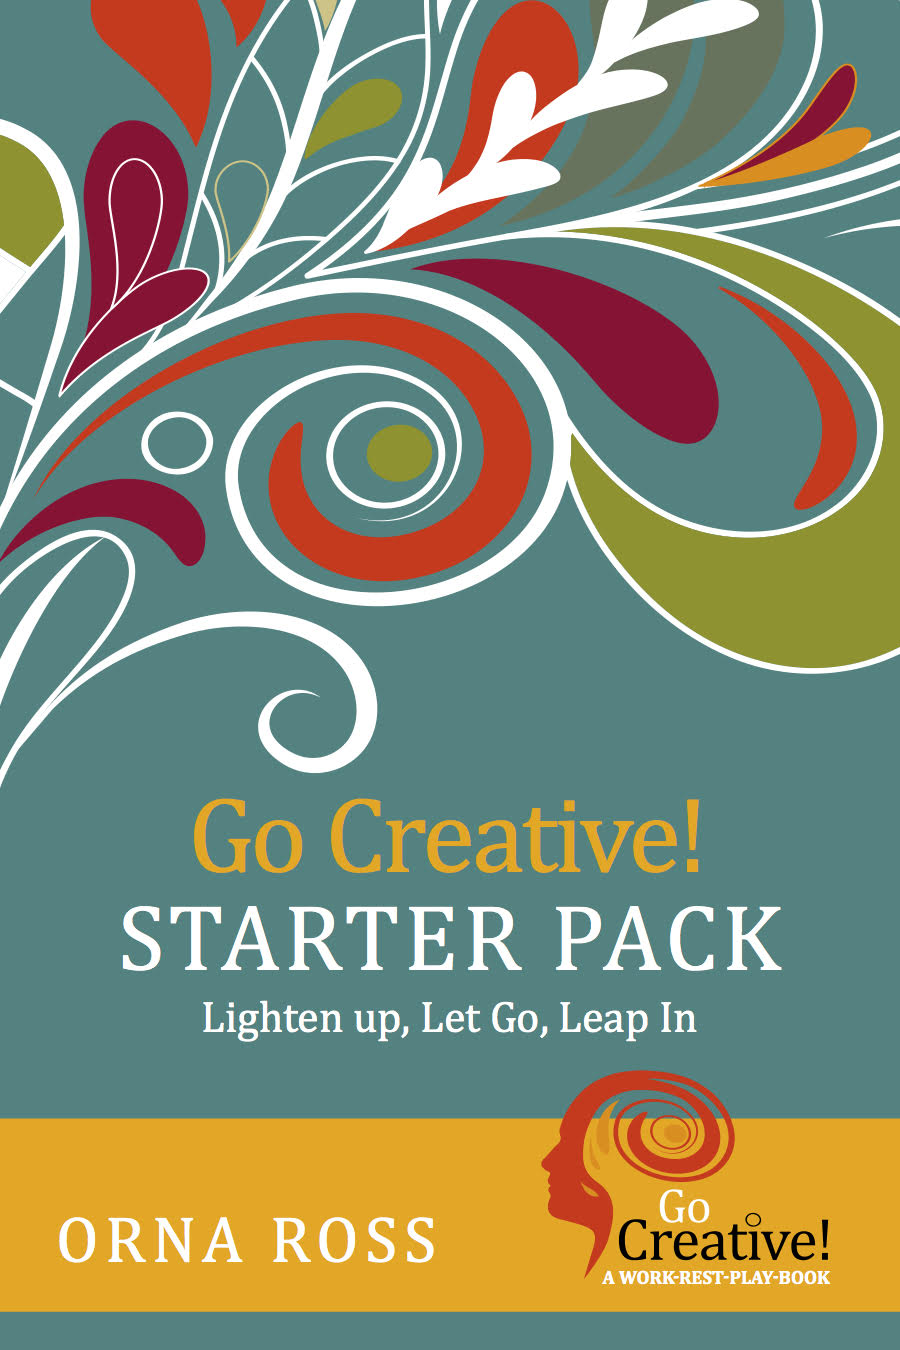 Go Creative! Start Up Pack